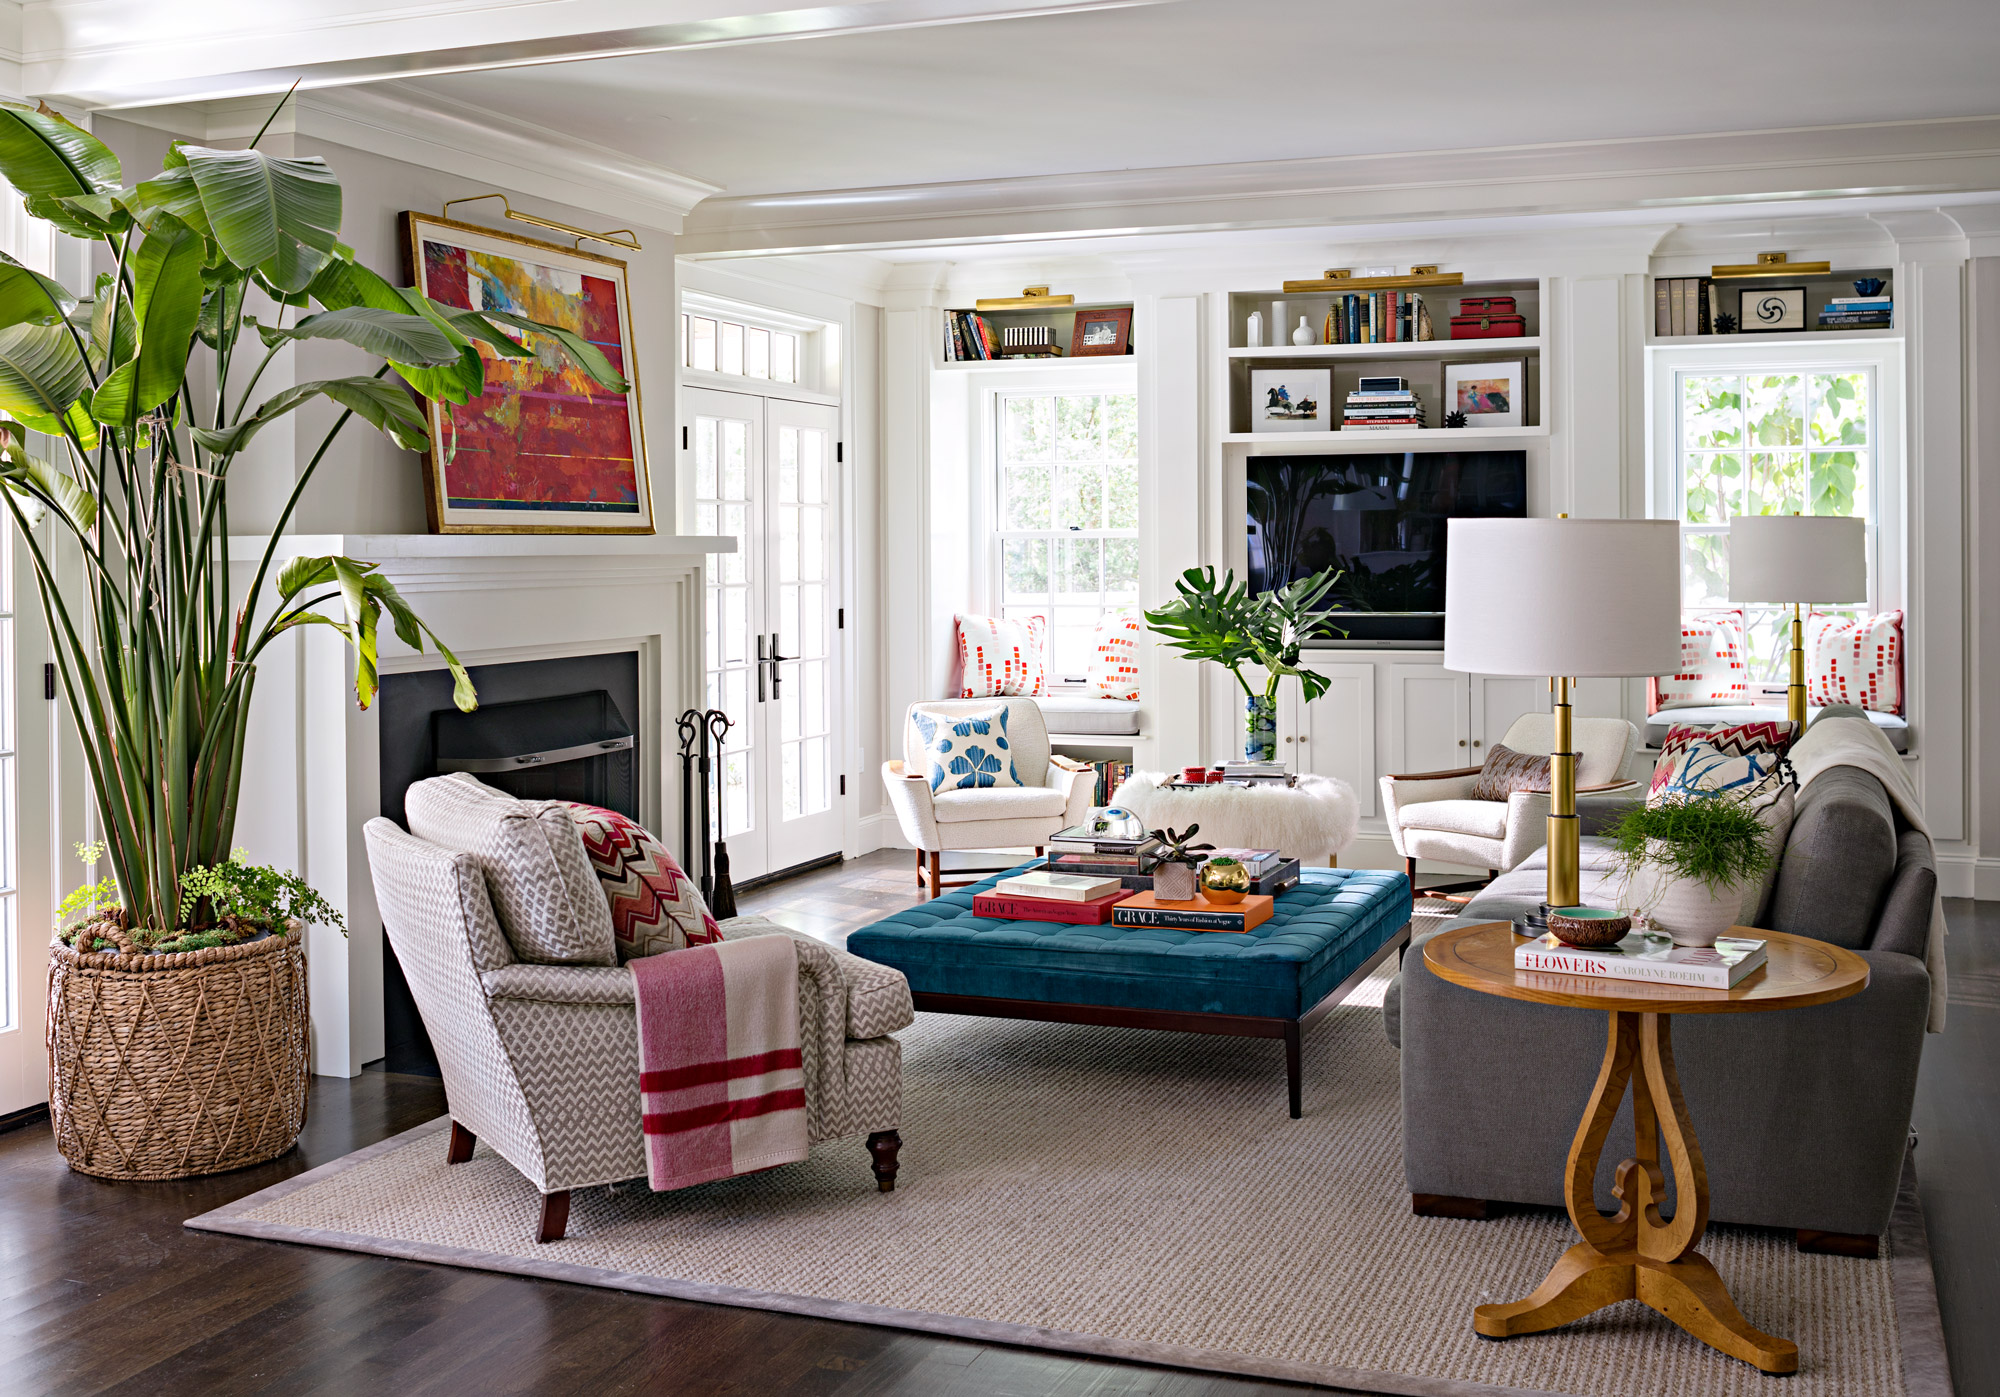 15 Stylish Ways To Decorate With A Tv Better Homes Gardens